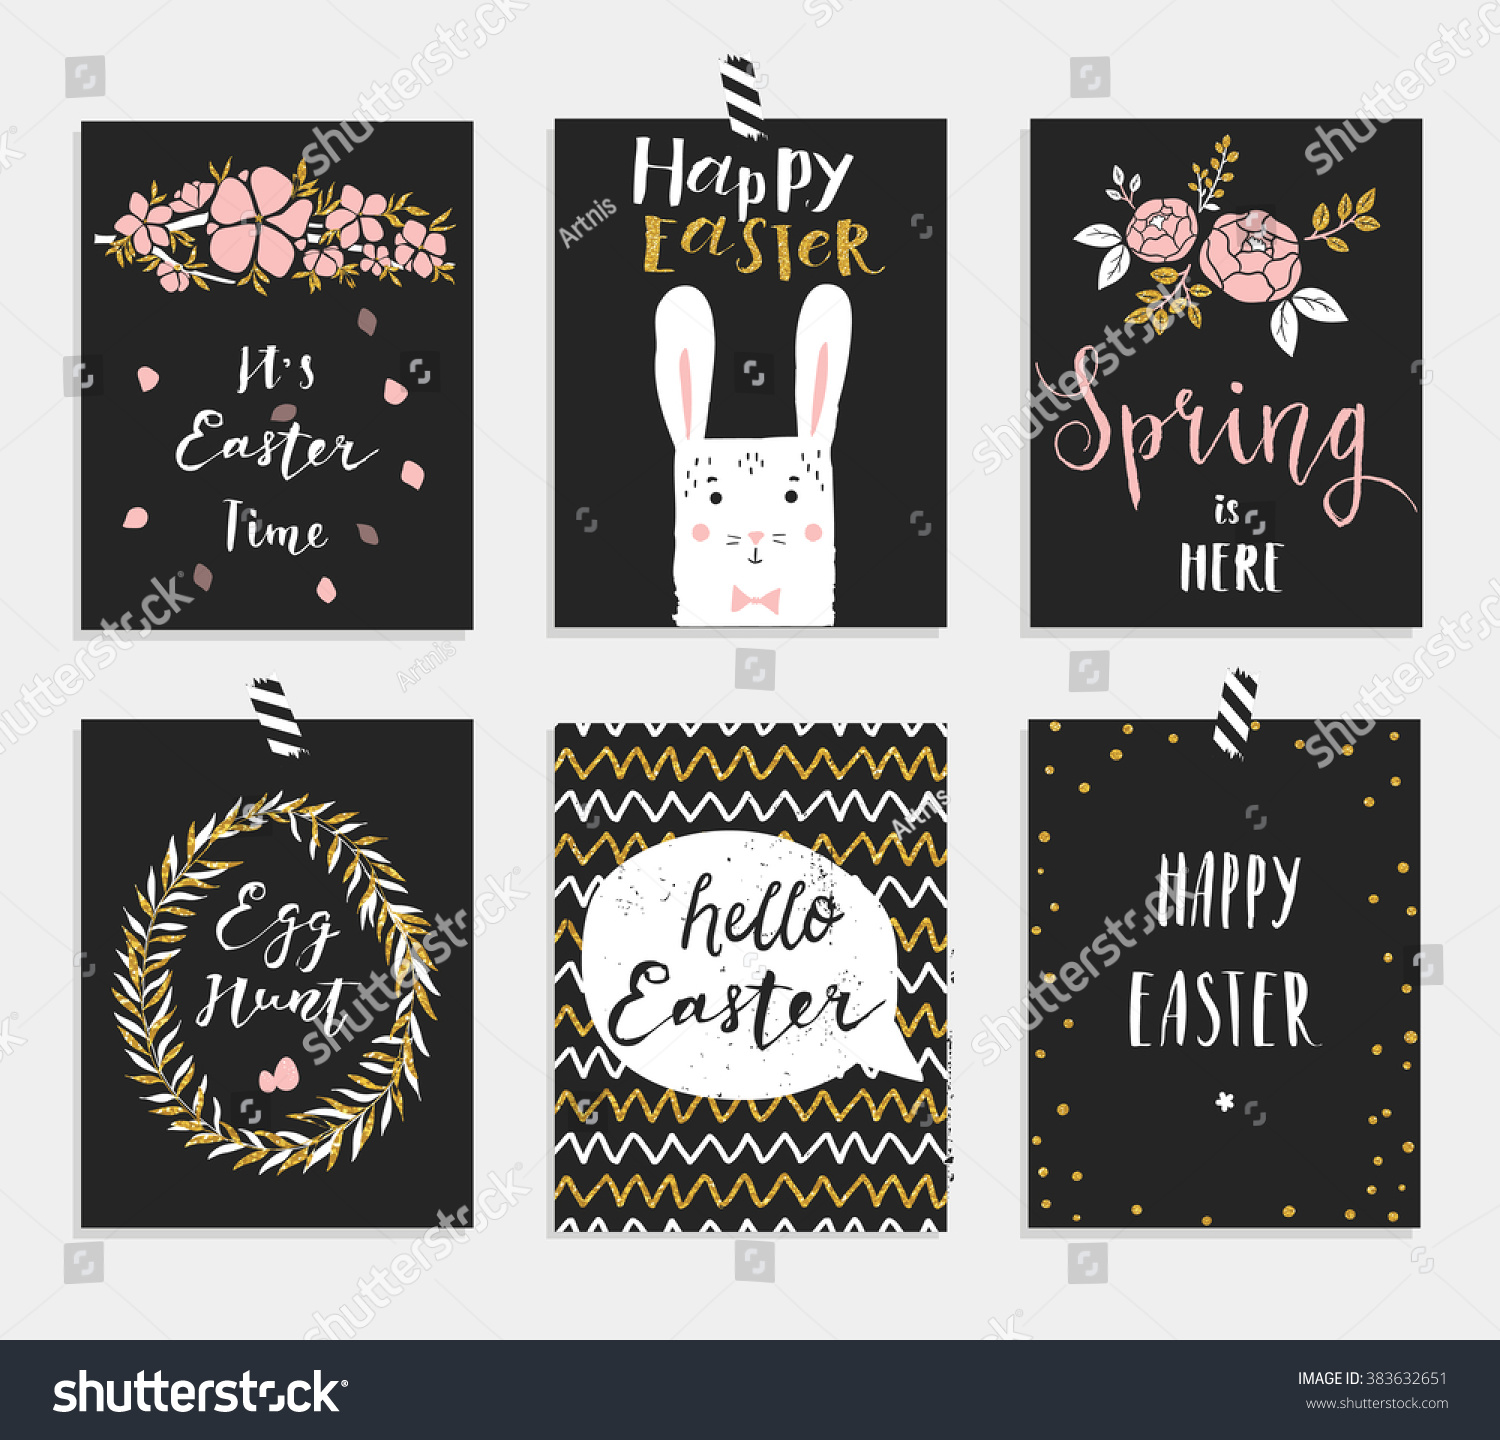 Free easter gift certificate template image collections gift and easter bunny gift certificate template images gift and gift easter gift certificate word template sample invoice yadclub Choice Image